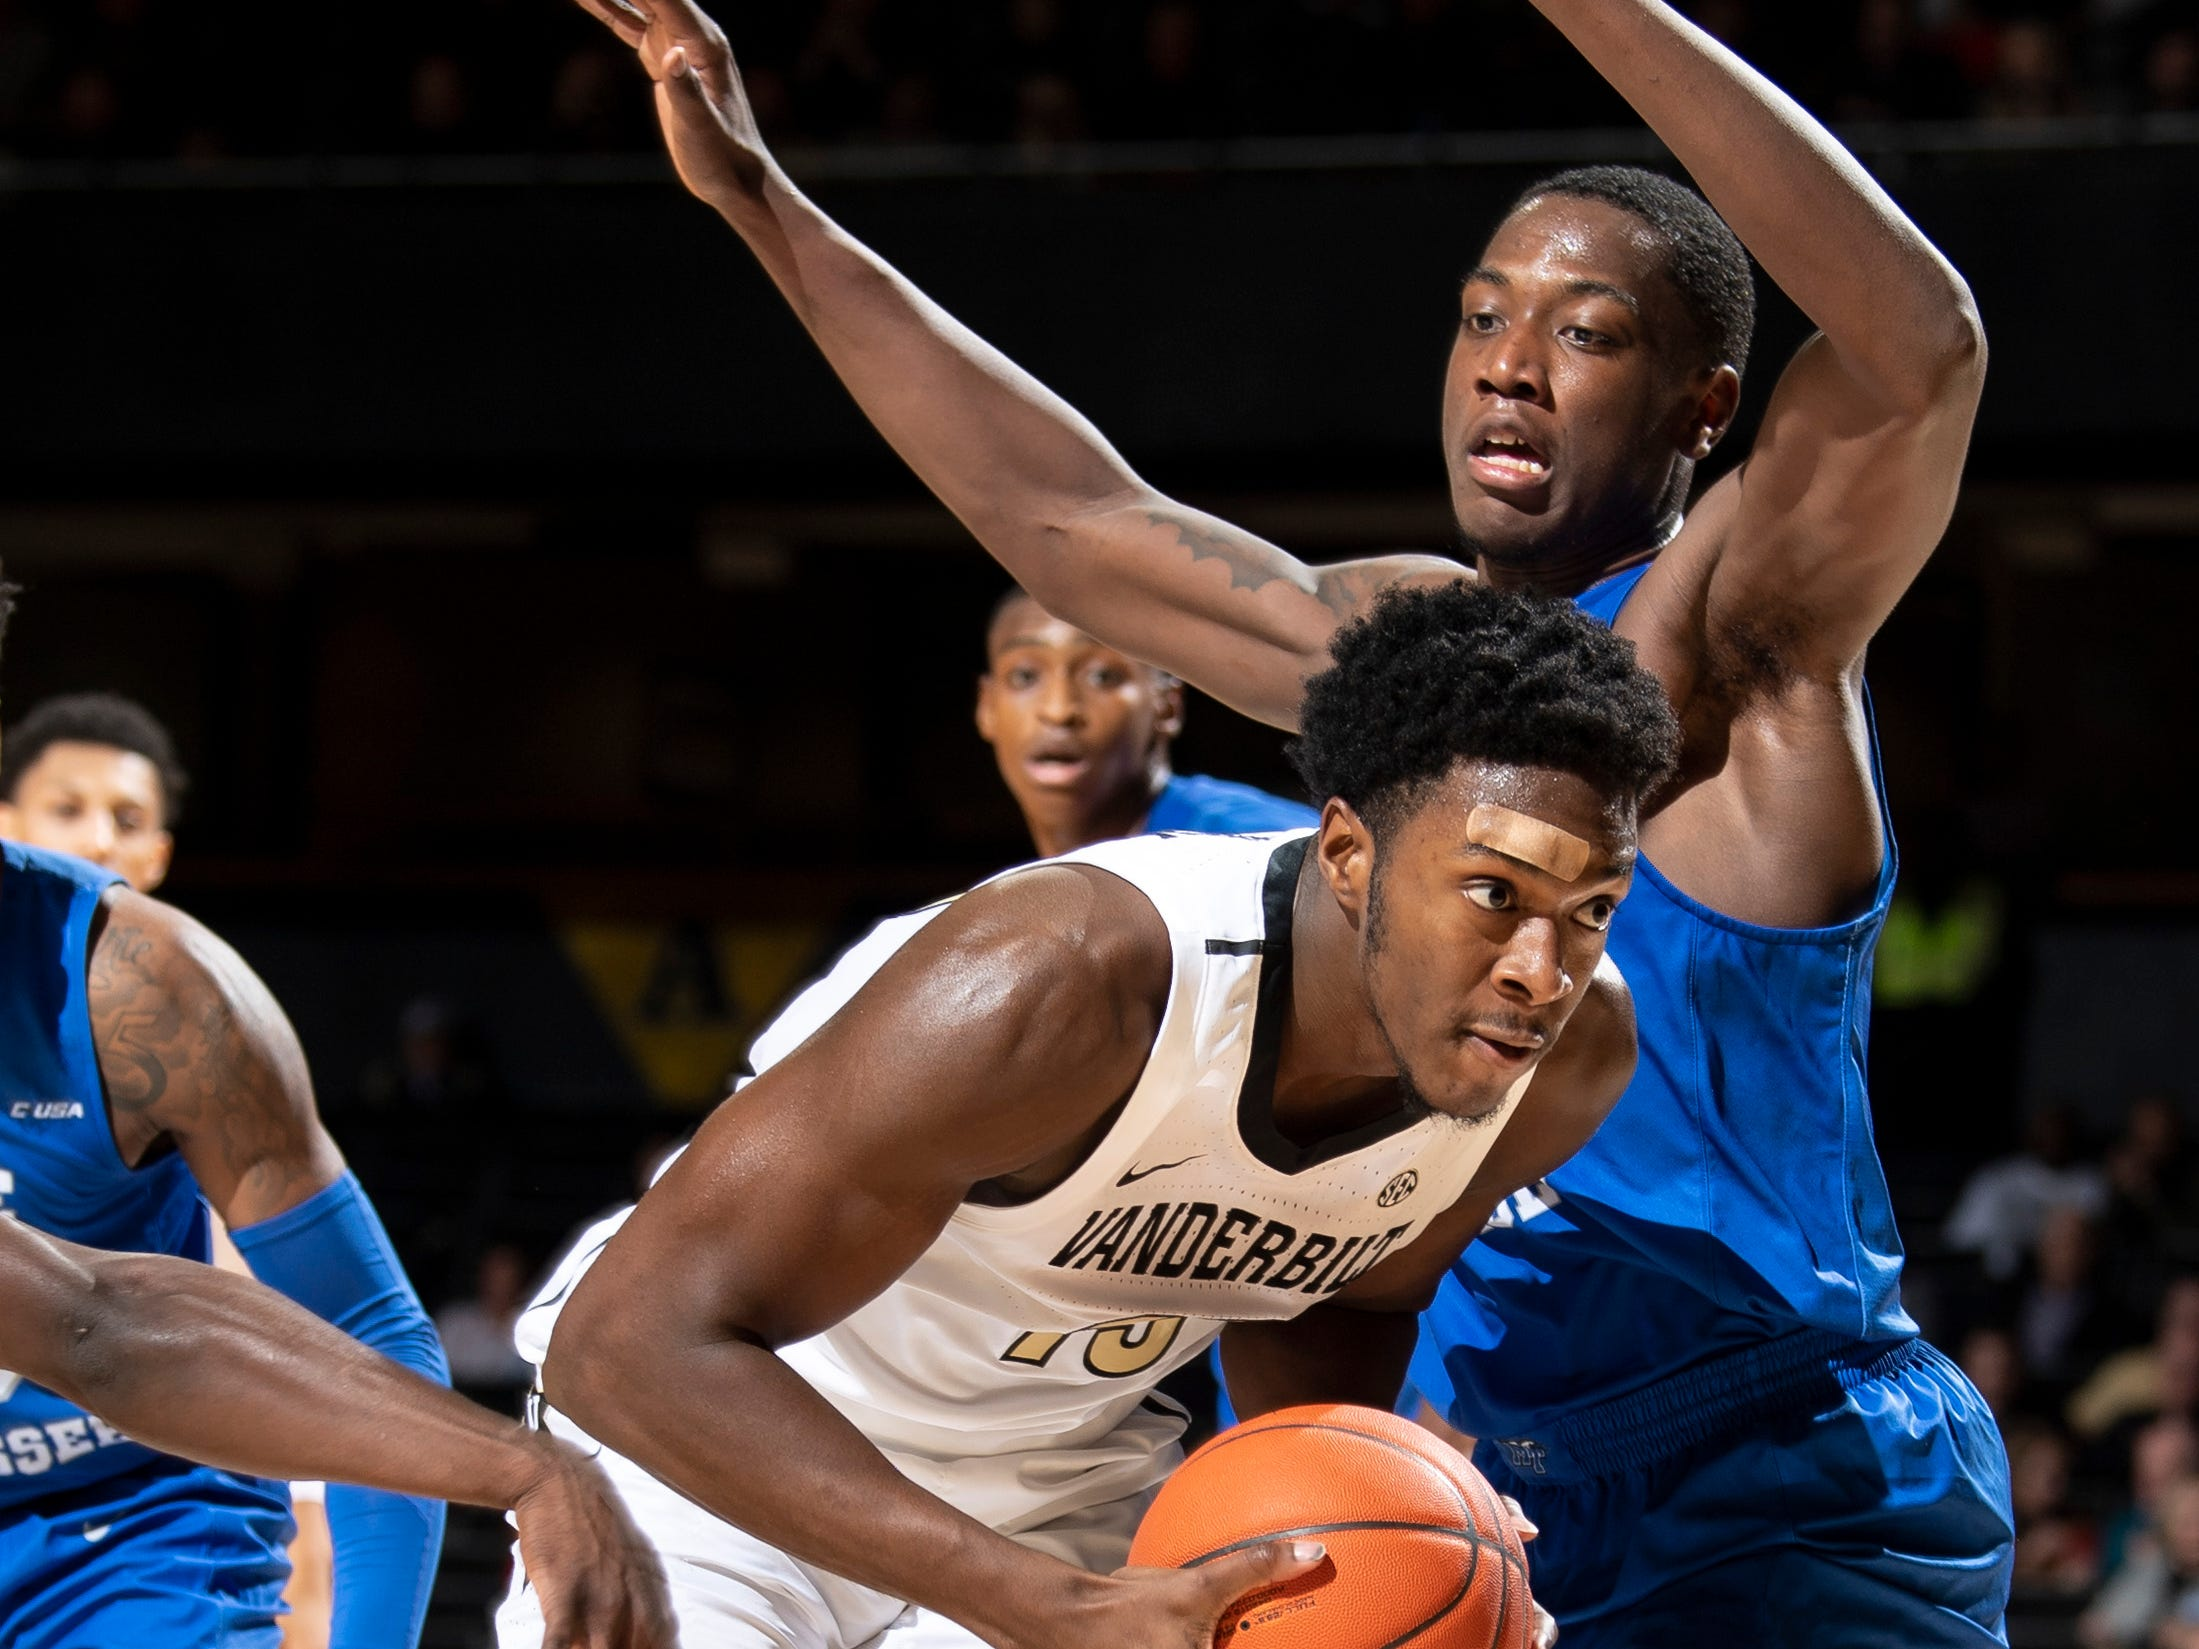 Vanderbilt forward Clevon Brown (15) advances past MTSU forward Reggie Scurry (22) during the first half at Memorial Gym in Nashville, Tenn., Wednesday, Dec. 5, 2018.